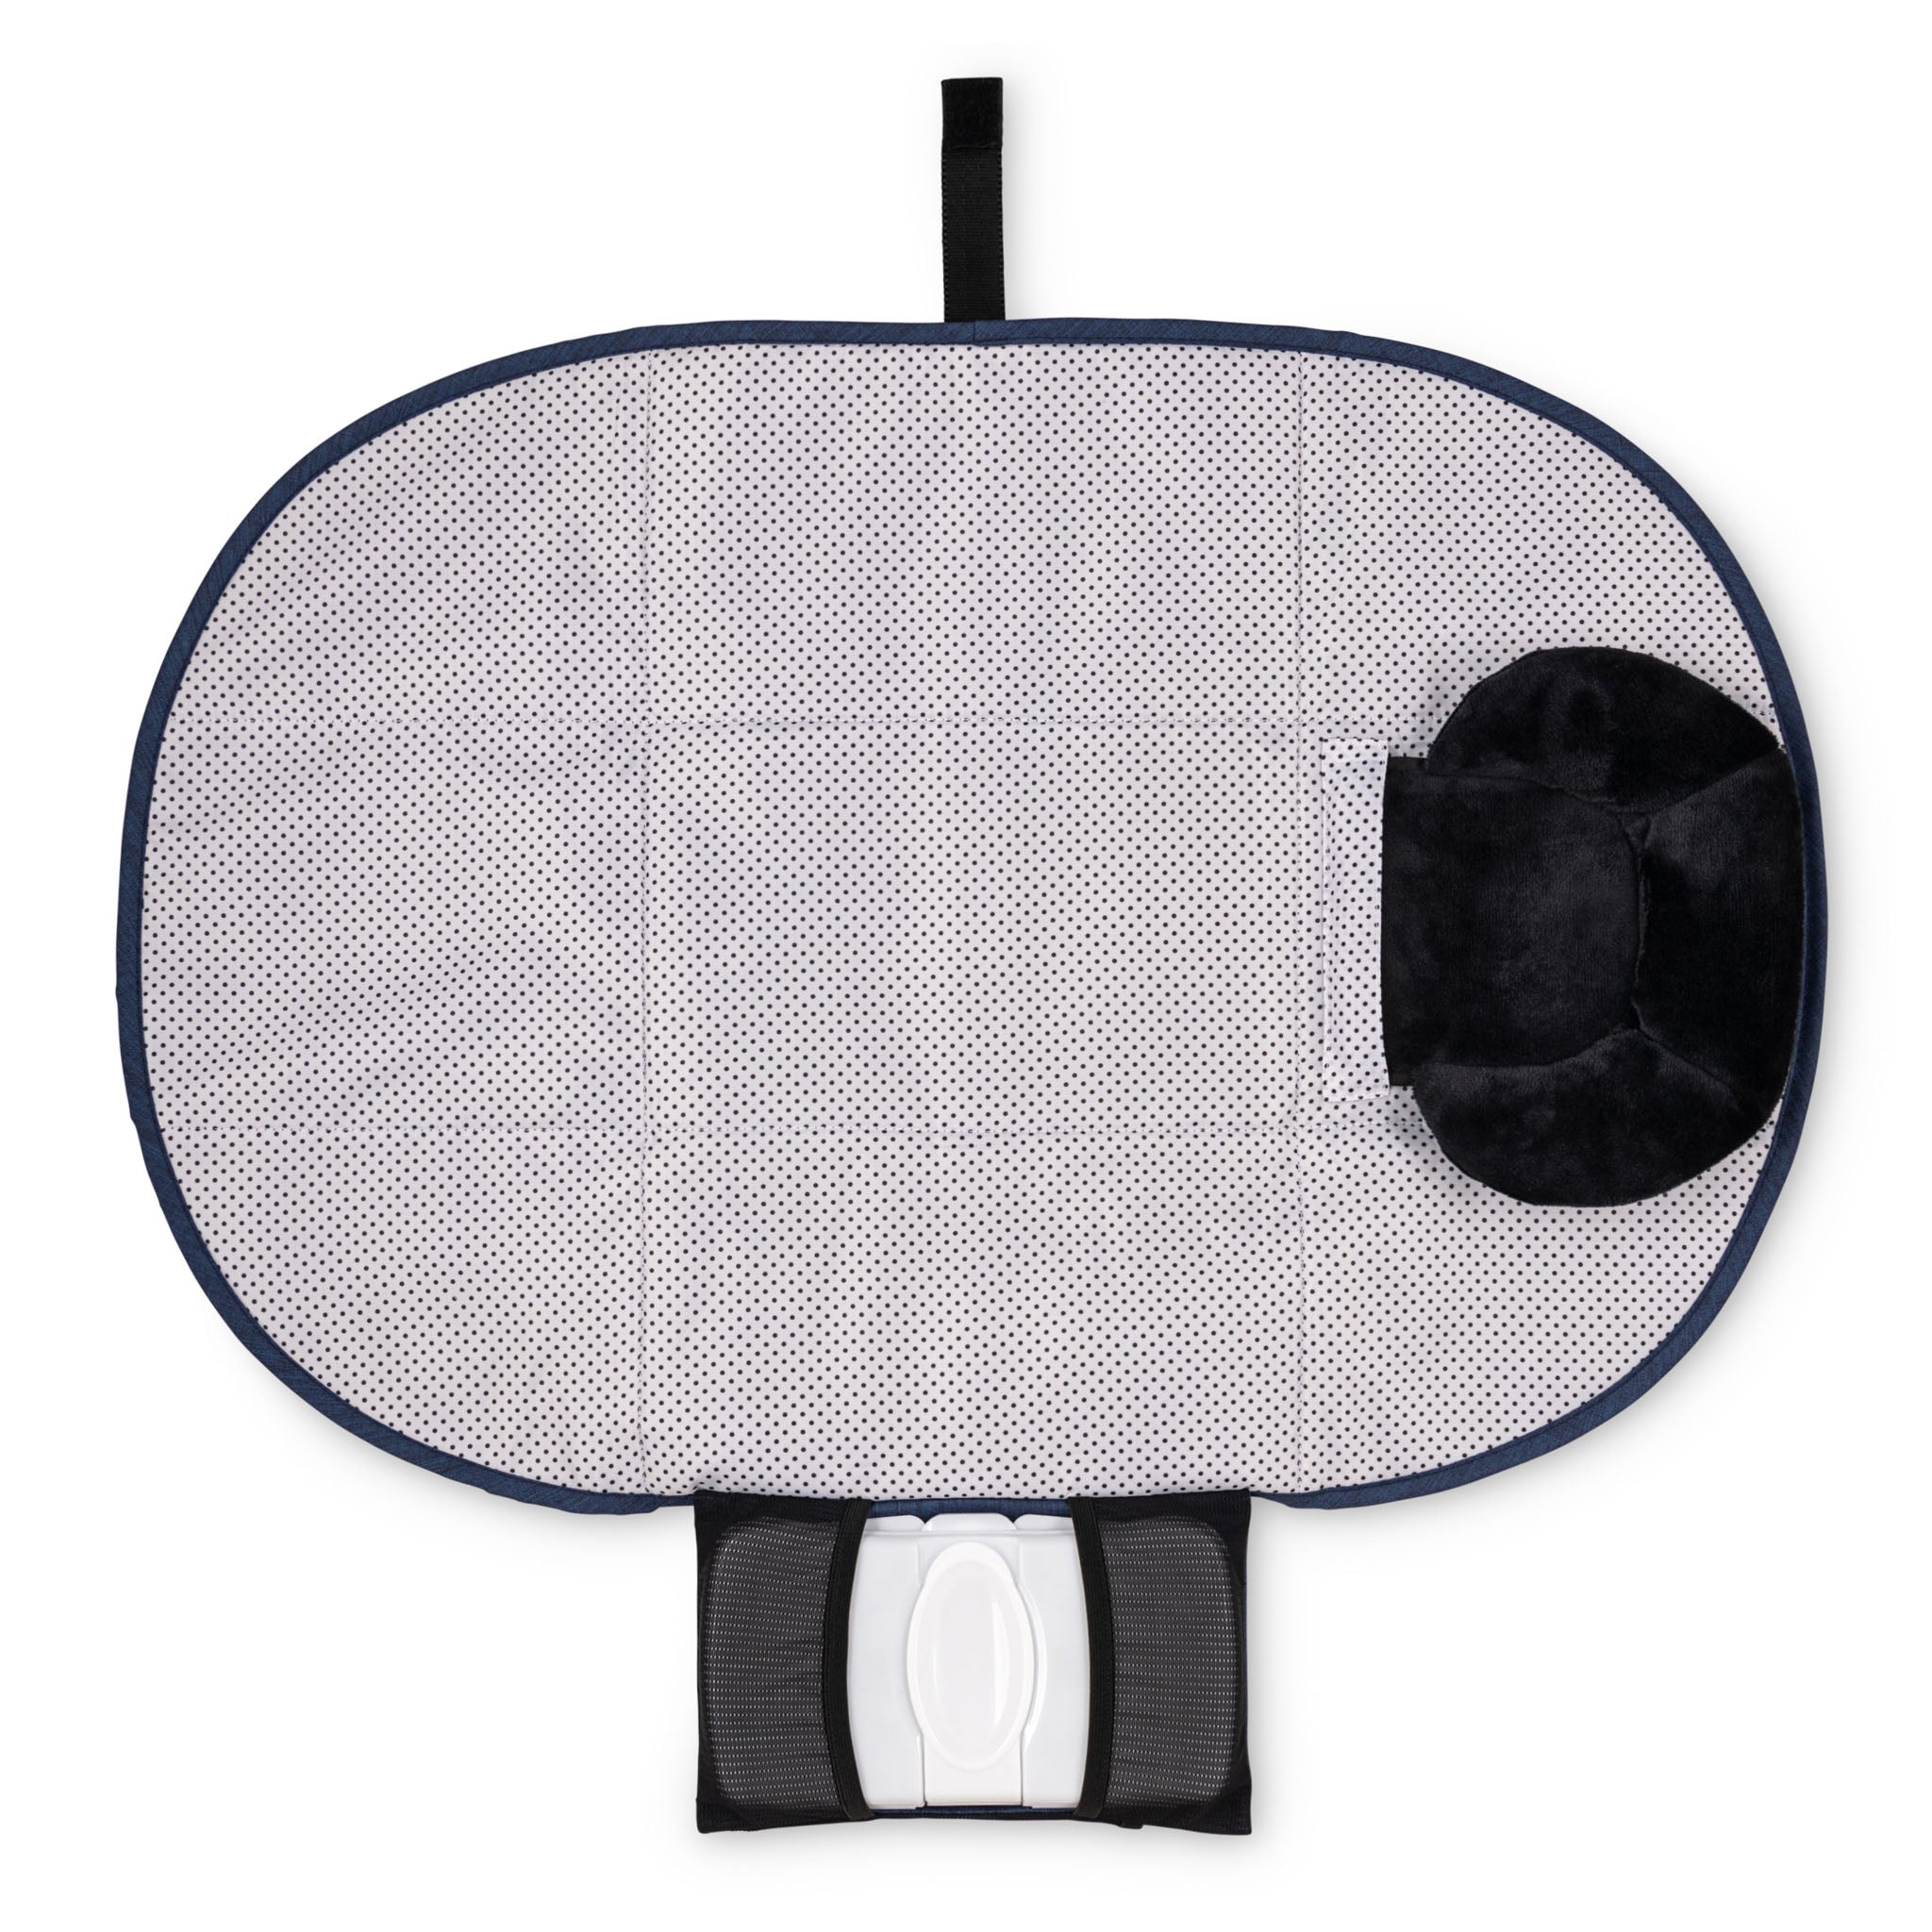 Changing Pad - All-in-1 Diaper Changing Station w/ Wipes Case & Pillow